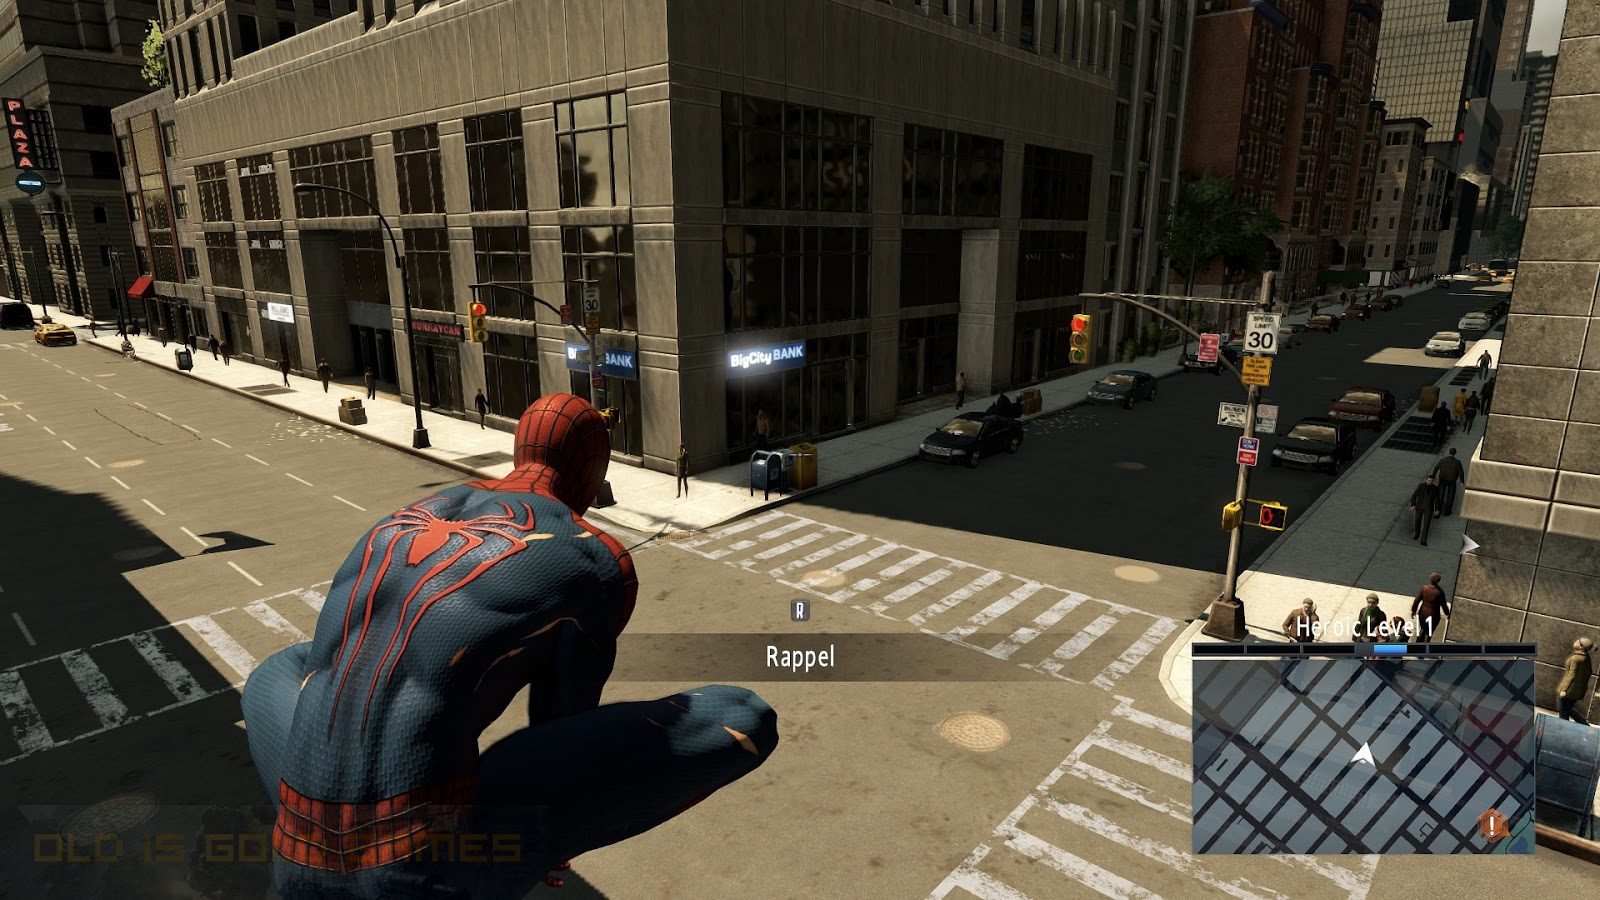 Spider man 3 fee download - Jeux de spiderman 3 gratuit ...